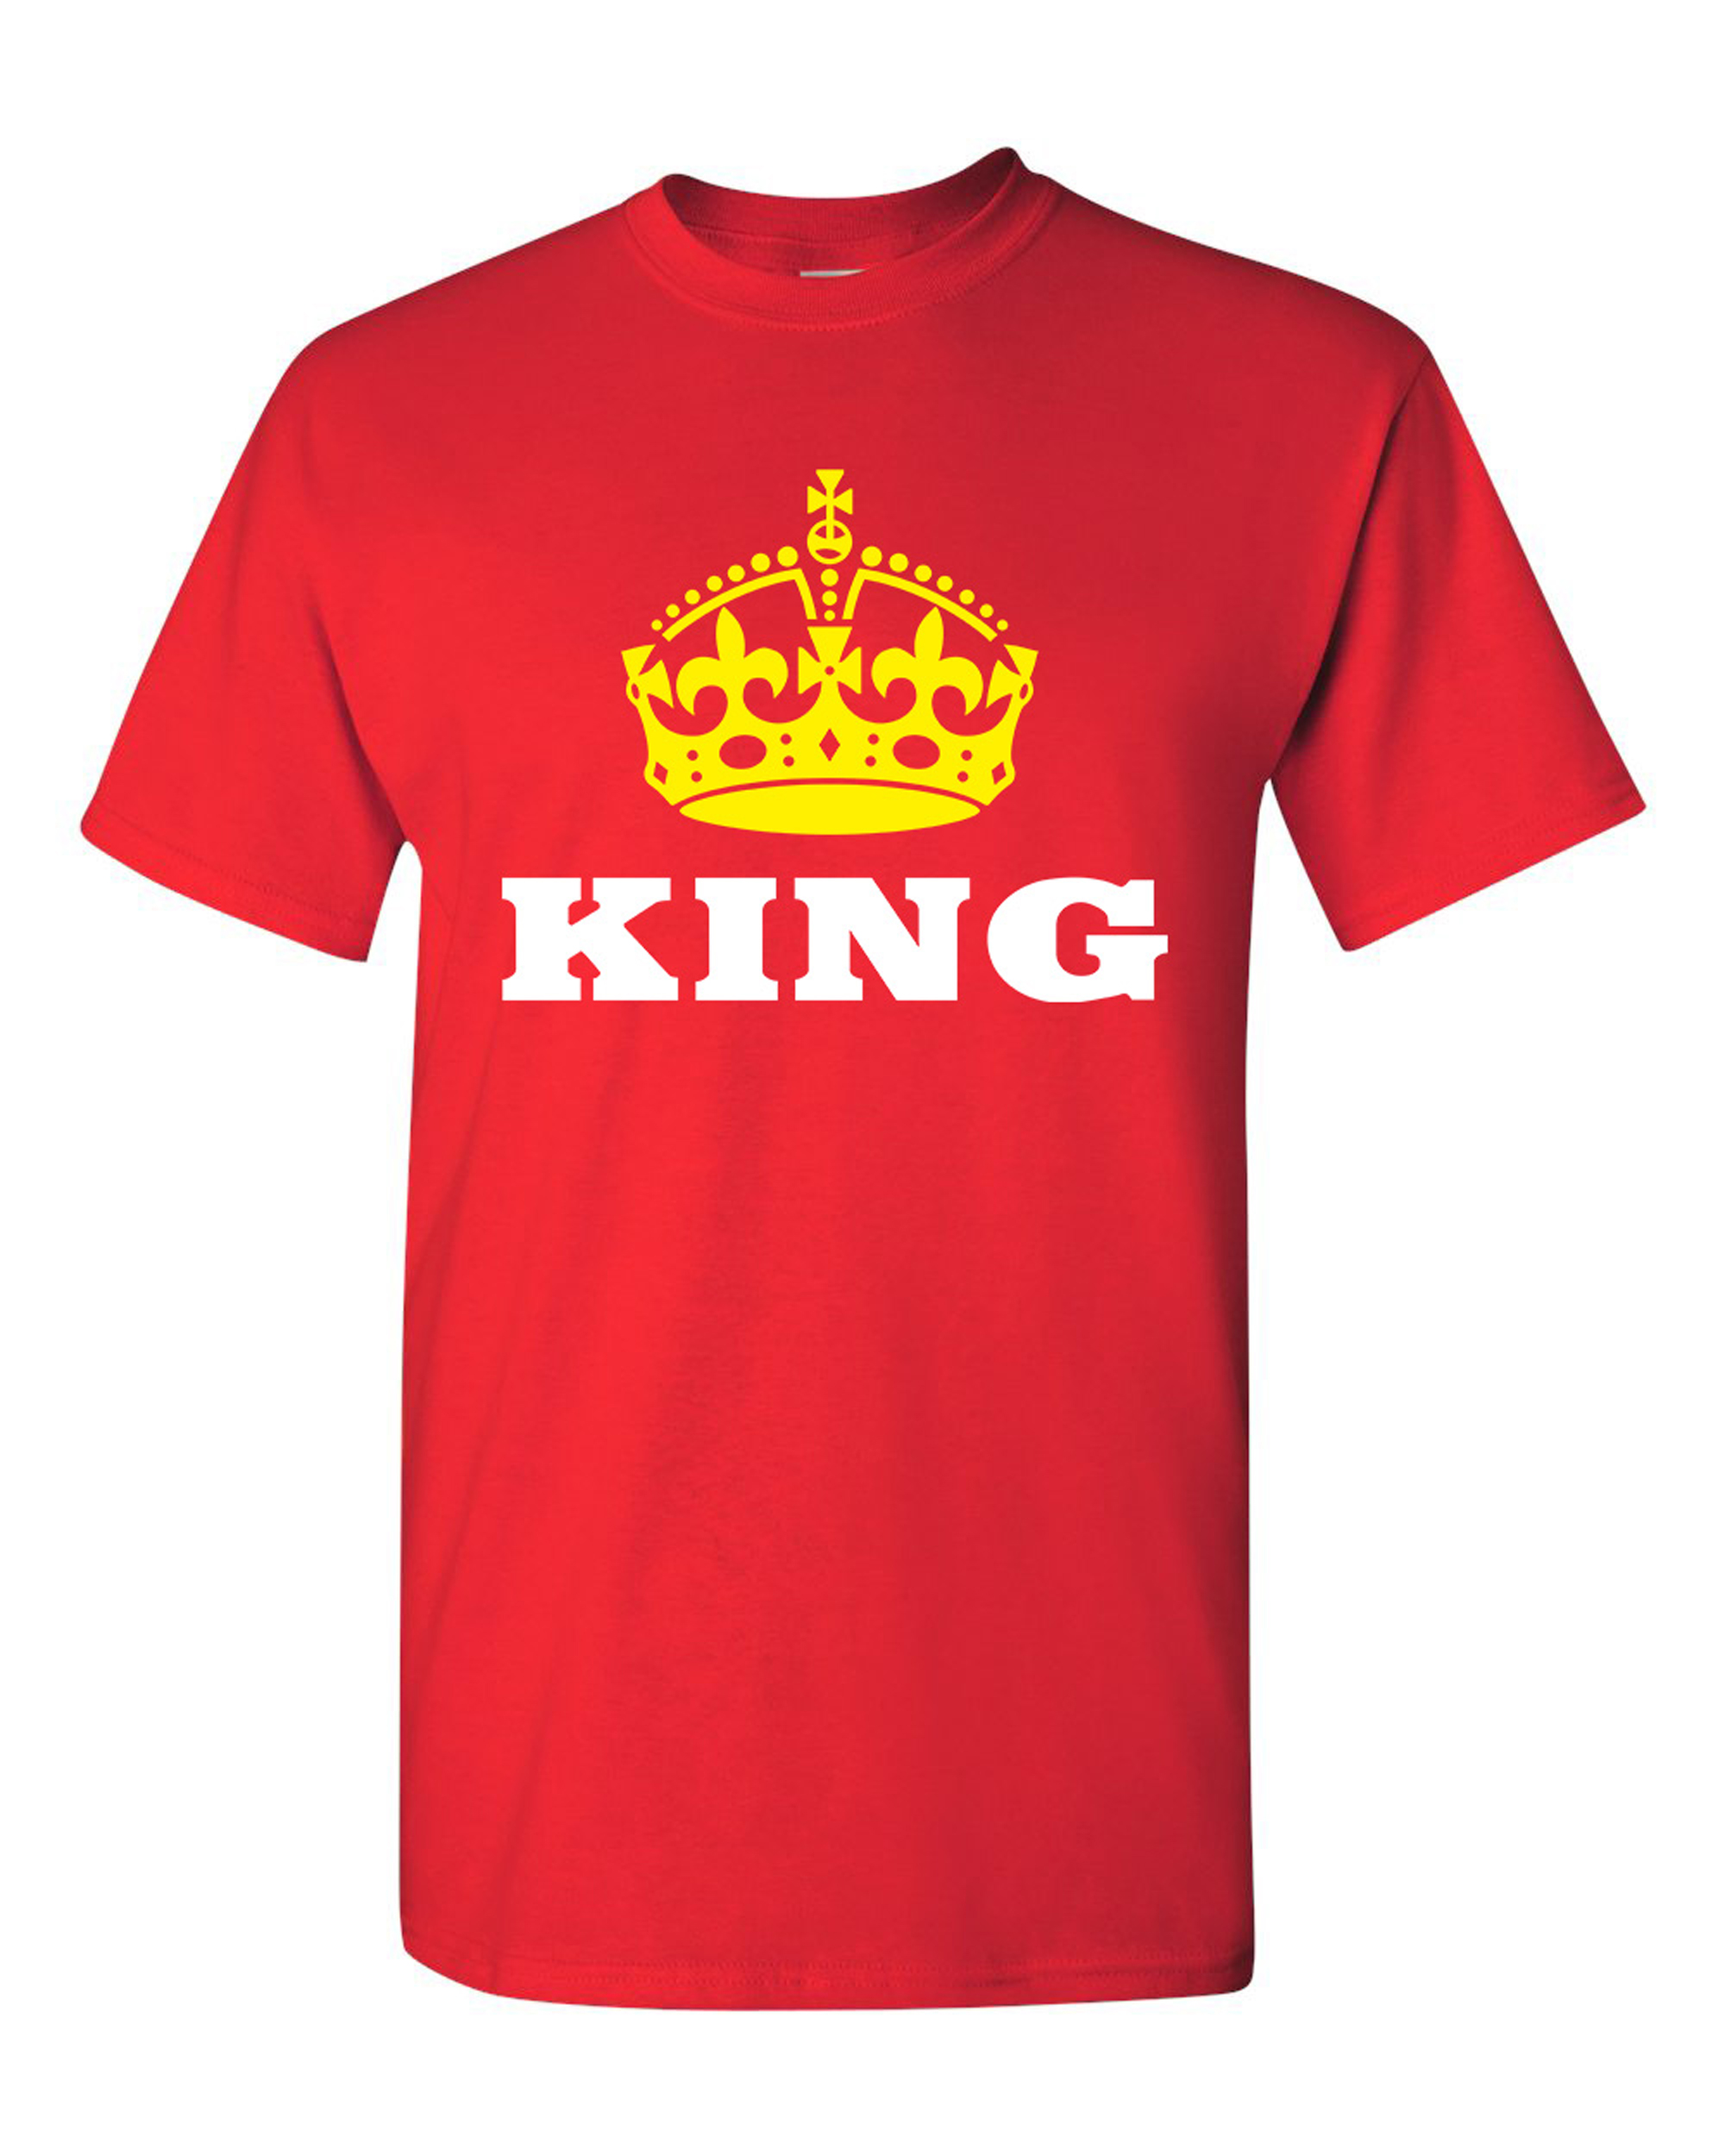 5017ed2d City Shirts - King Gold Crown Couple Love Matching Relationship Funny DT  Adult T-Shirt Tee - Walmart.com